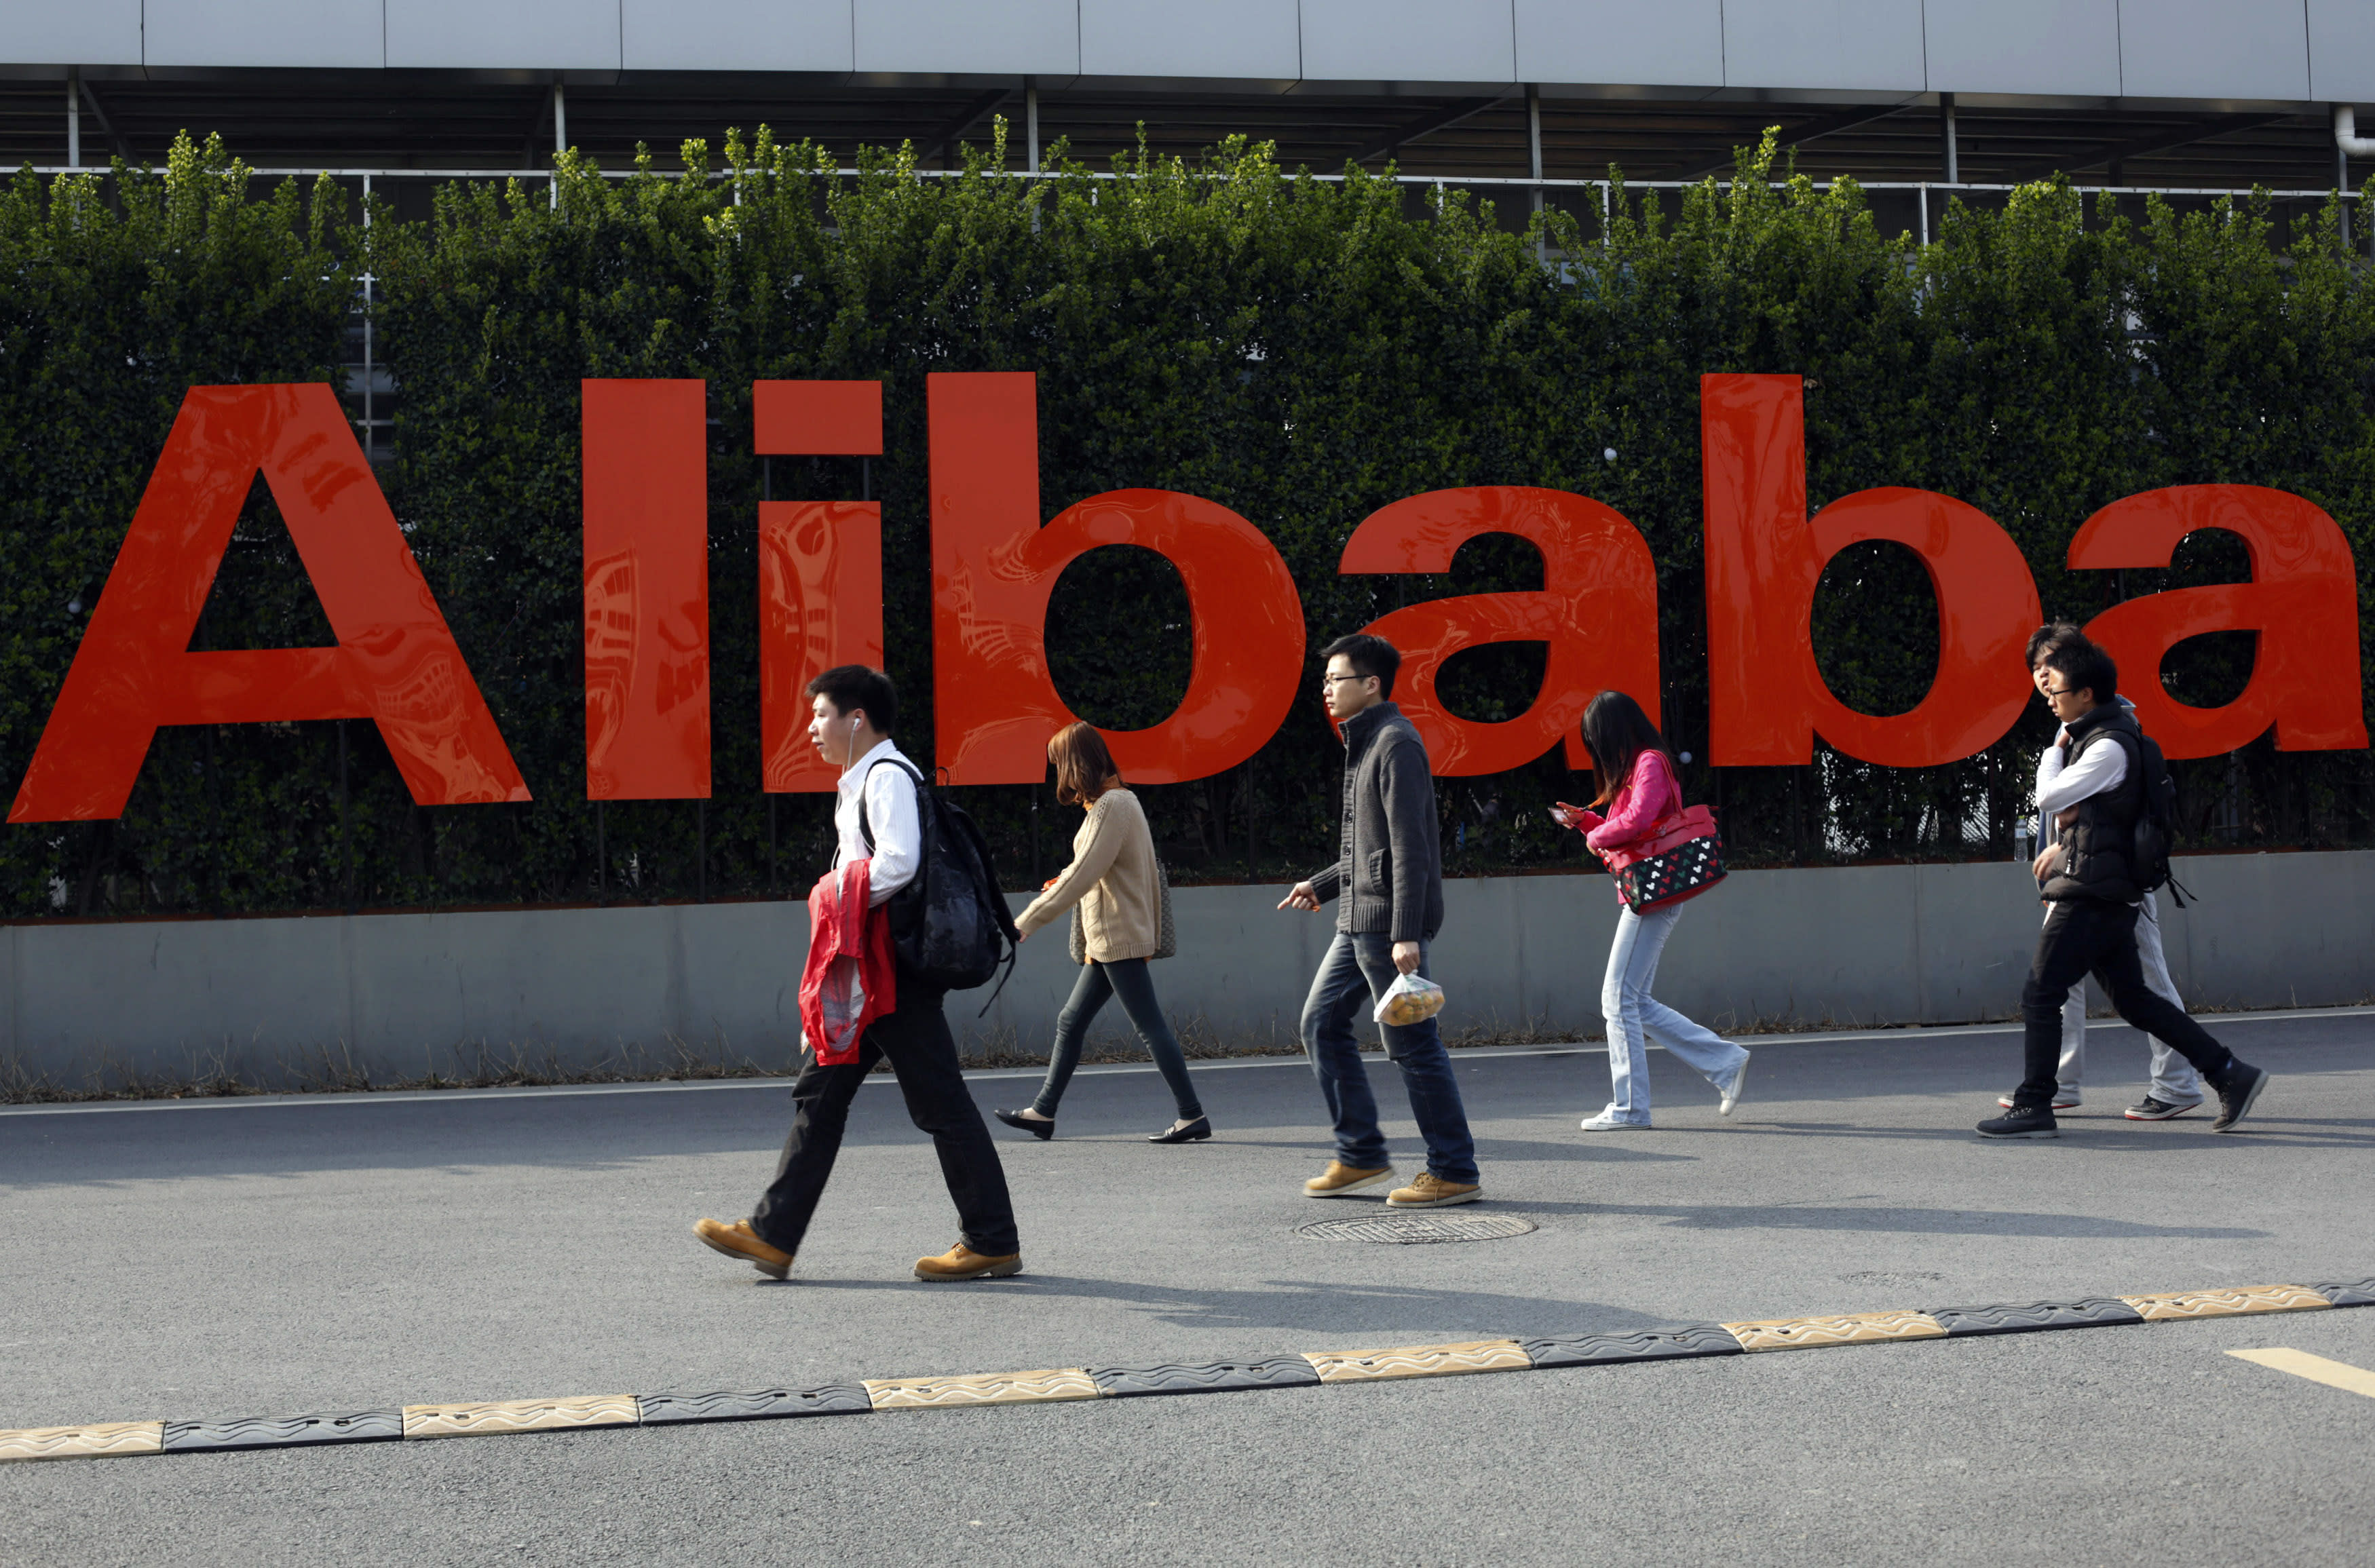 FILE - In this March 17, 2014 file photo, people walk past a company logo at the Alibaba Group headquarters in Hangzhou, in eastern China's Zhejiang province. Office Depot and Alibaba.com are creating a co-branded online store to expand the reach of both companies with small and medium size businesses. The two companies announced the agreement Monday, March 4, 2019, as part of a broader array of services they are providing to small business. Over time, the companies intend to help U.S. small businesses sell their products to buyers around the world through Alibaba.com. It marks Alibaba.com's first U.S. partnership with a major company. (Chinatopix via AP, File)